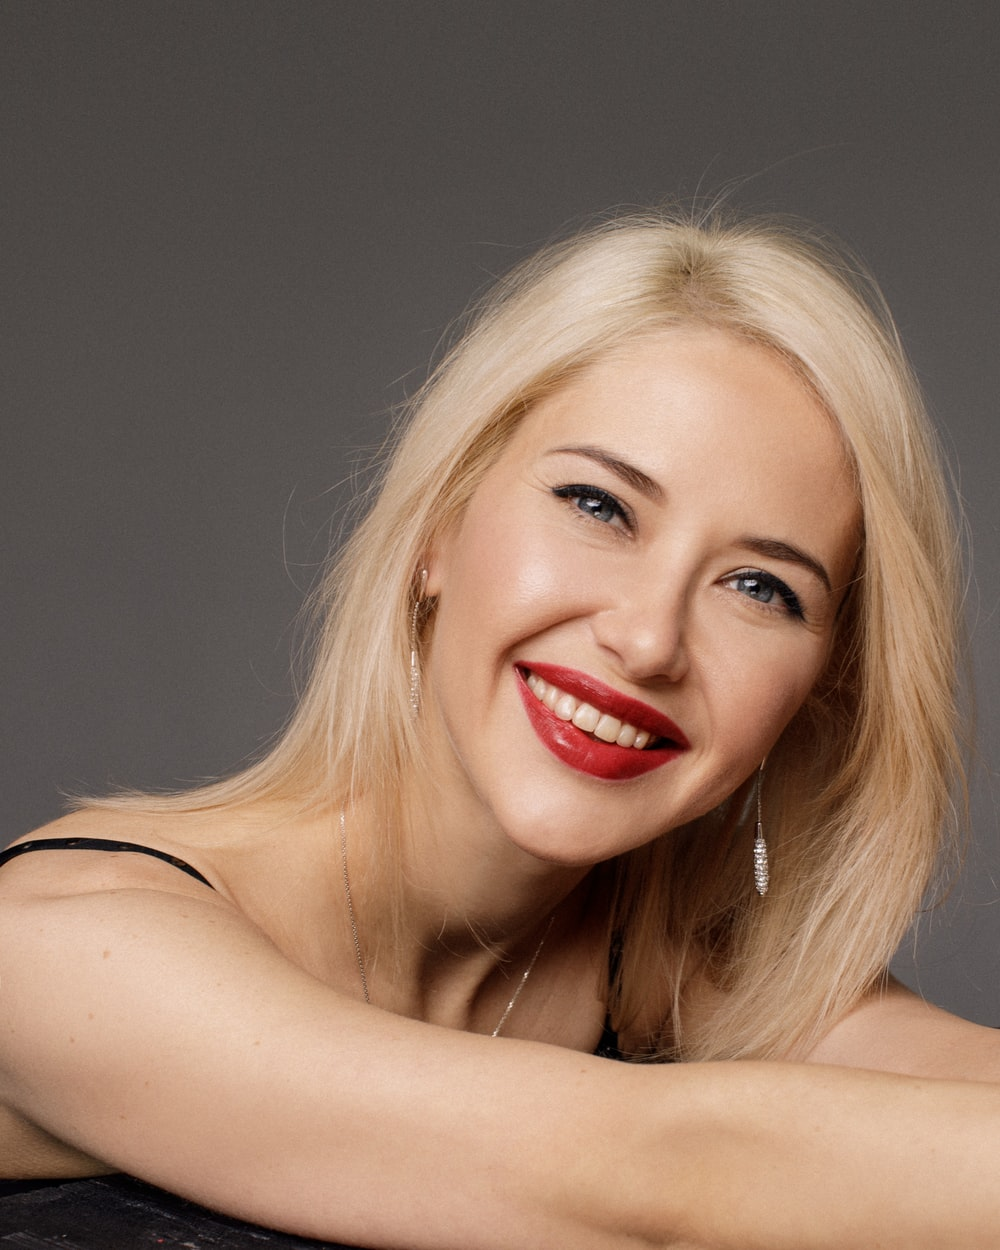 woman in red lipstick smiling